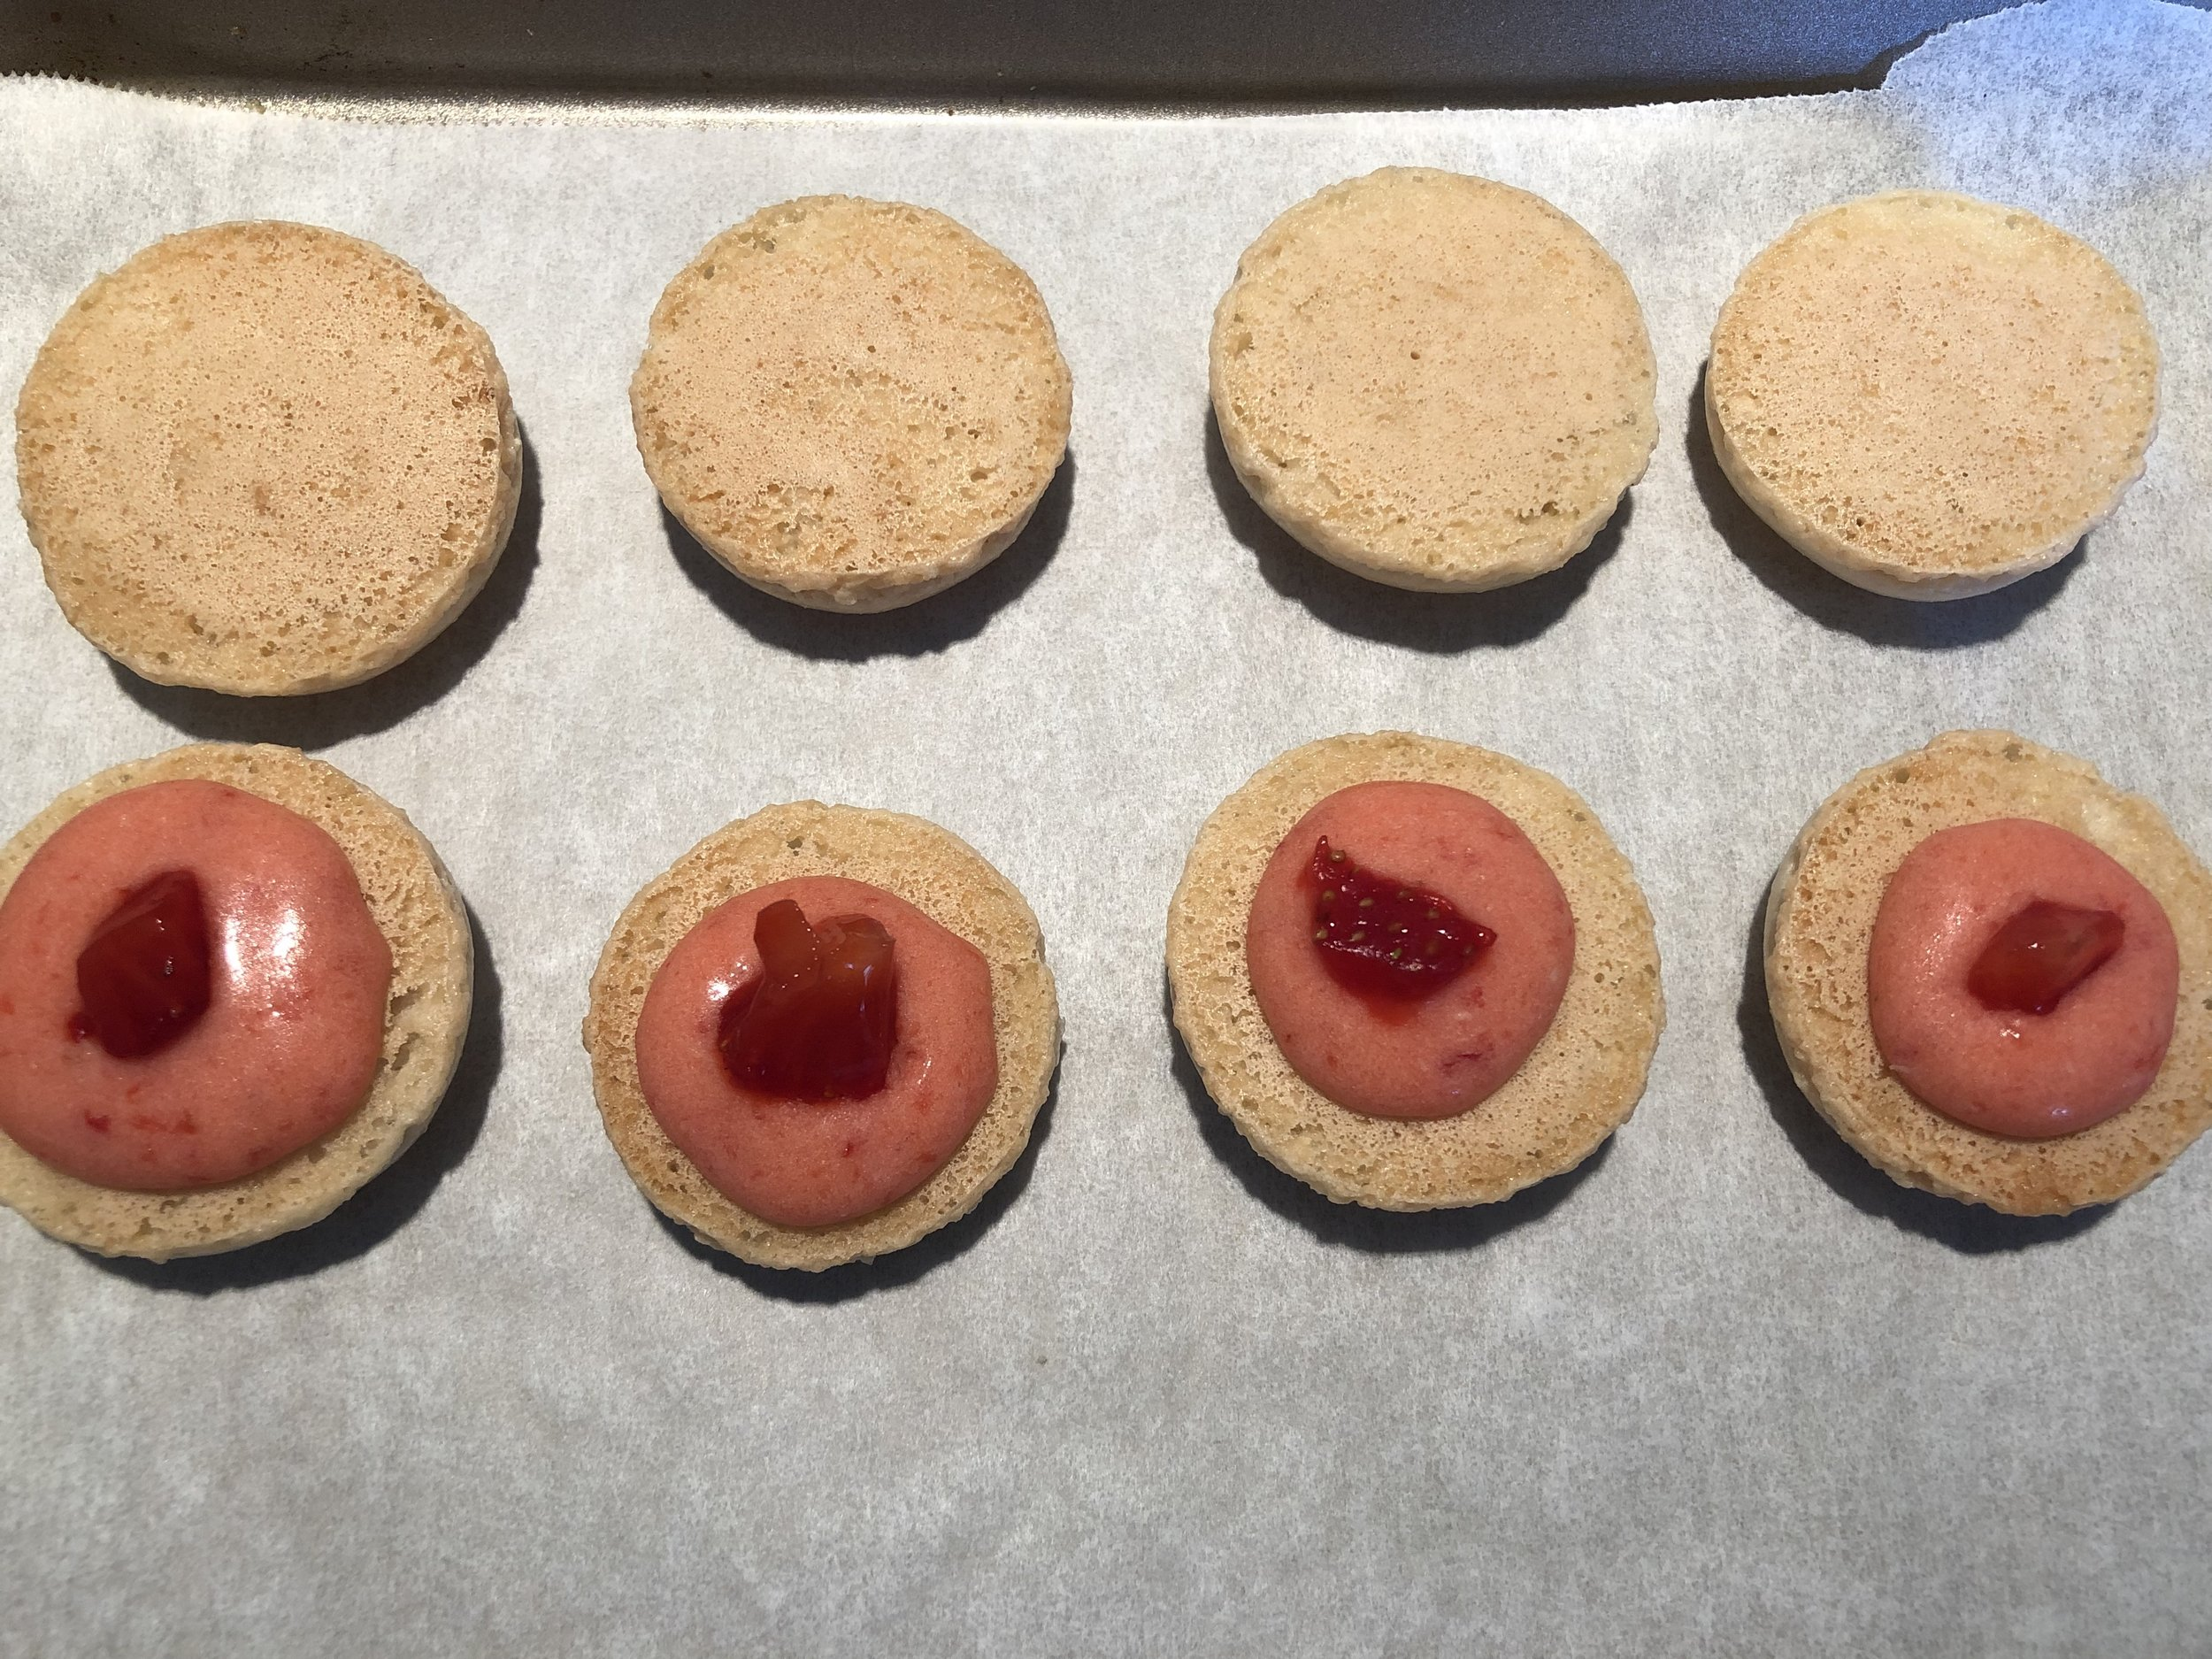 Strawberry icing with tiny strawberry pieces inside